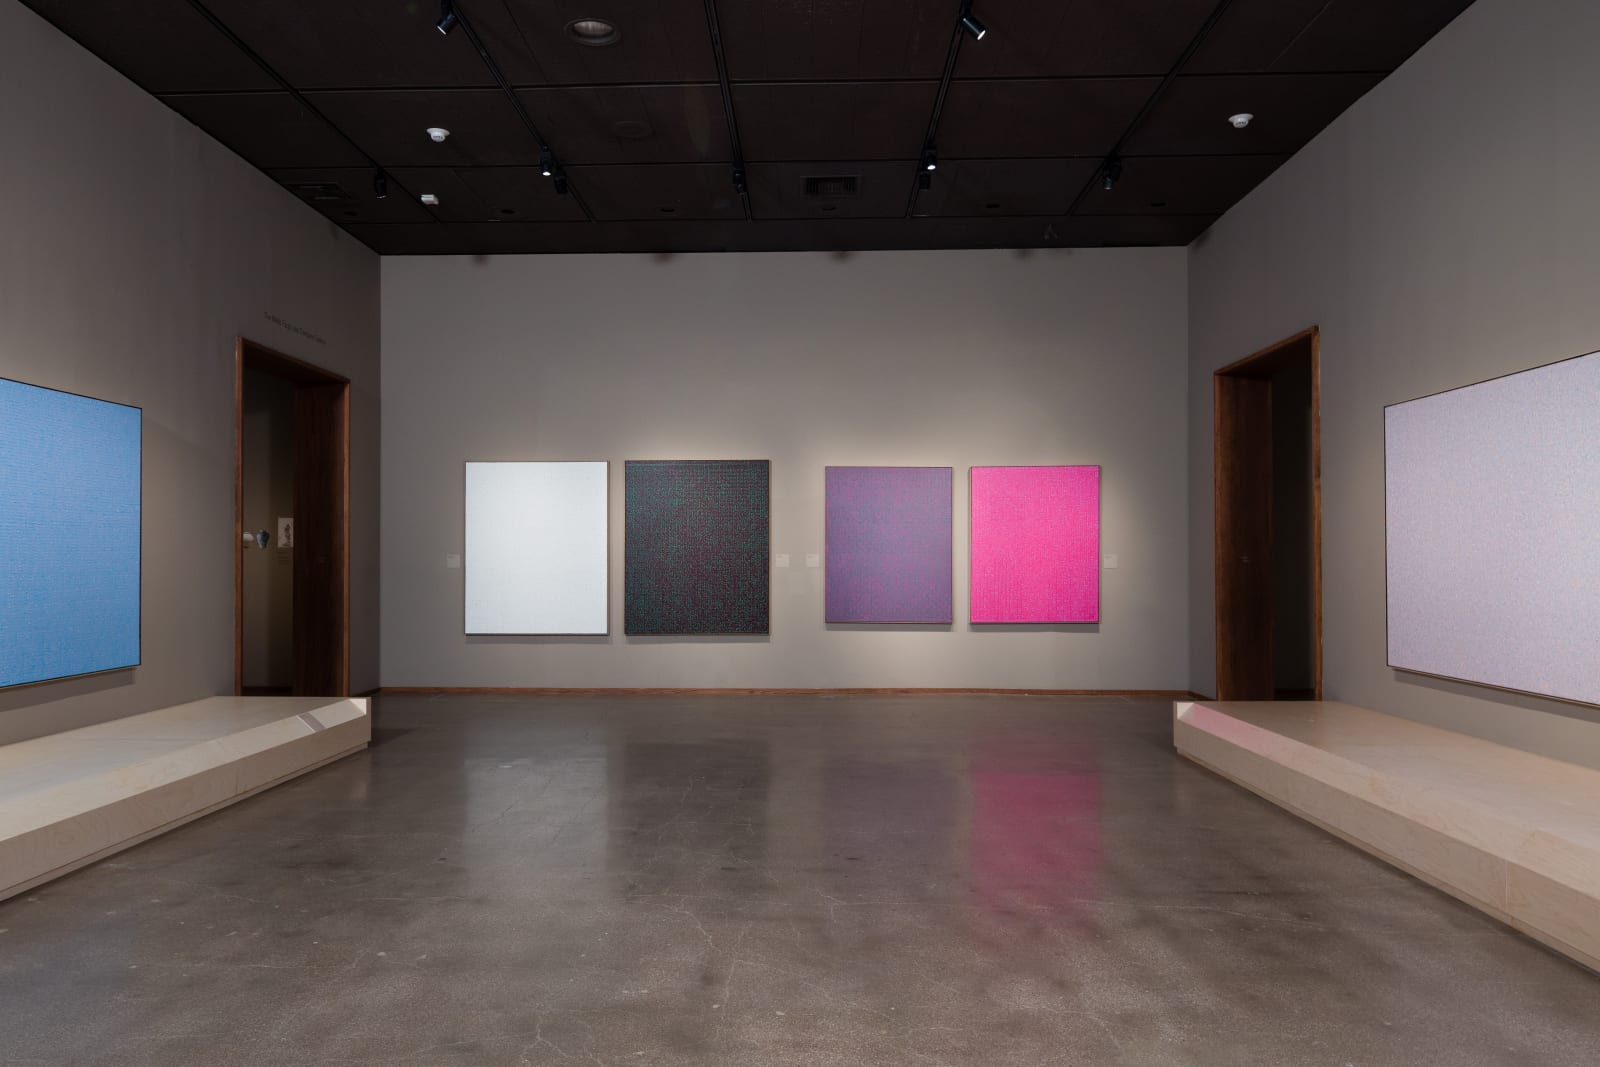 Young-Il Ahn, Unexpected Light, LACMA, Los Angeles, CA, Installation View, Photo by Michael Underwood.